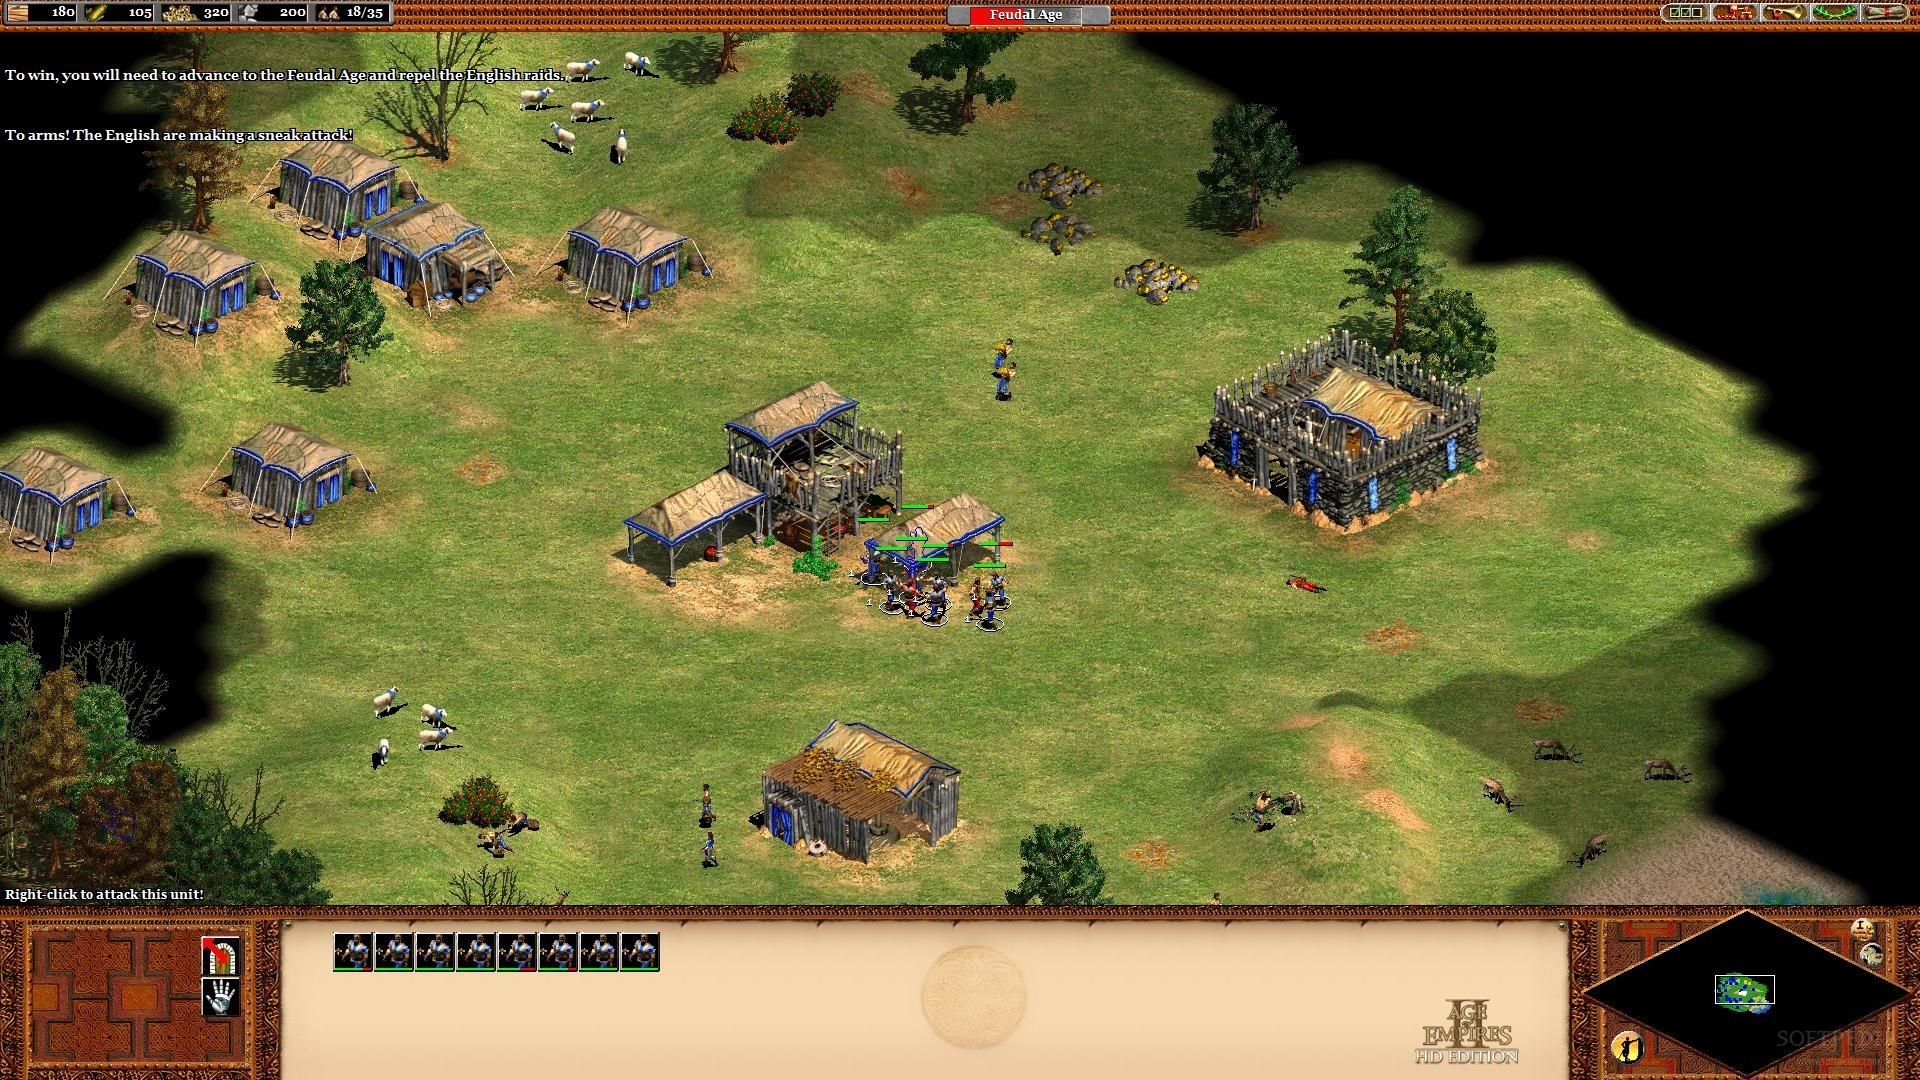 age of empires ii hd patch v2 7-reloaded full game free pc, download